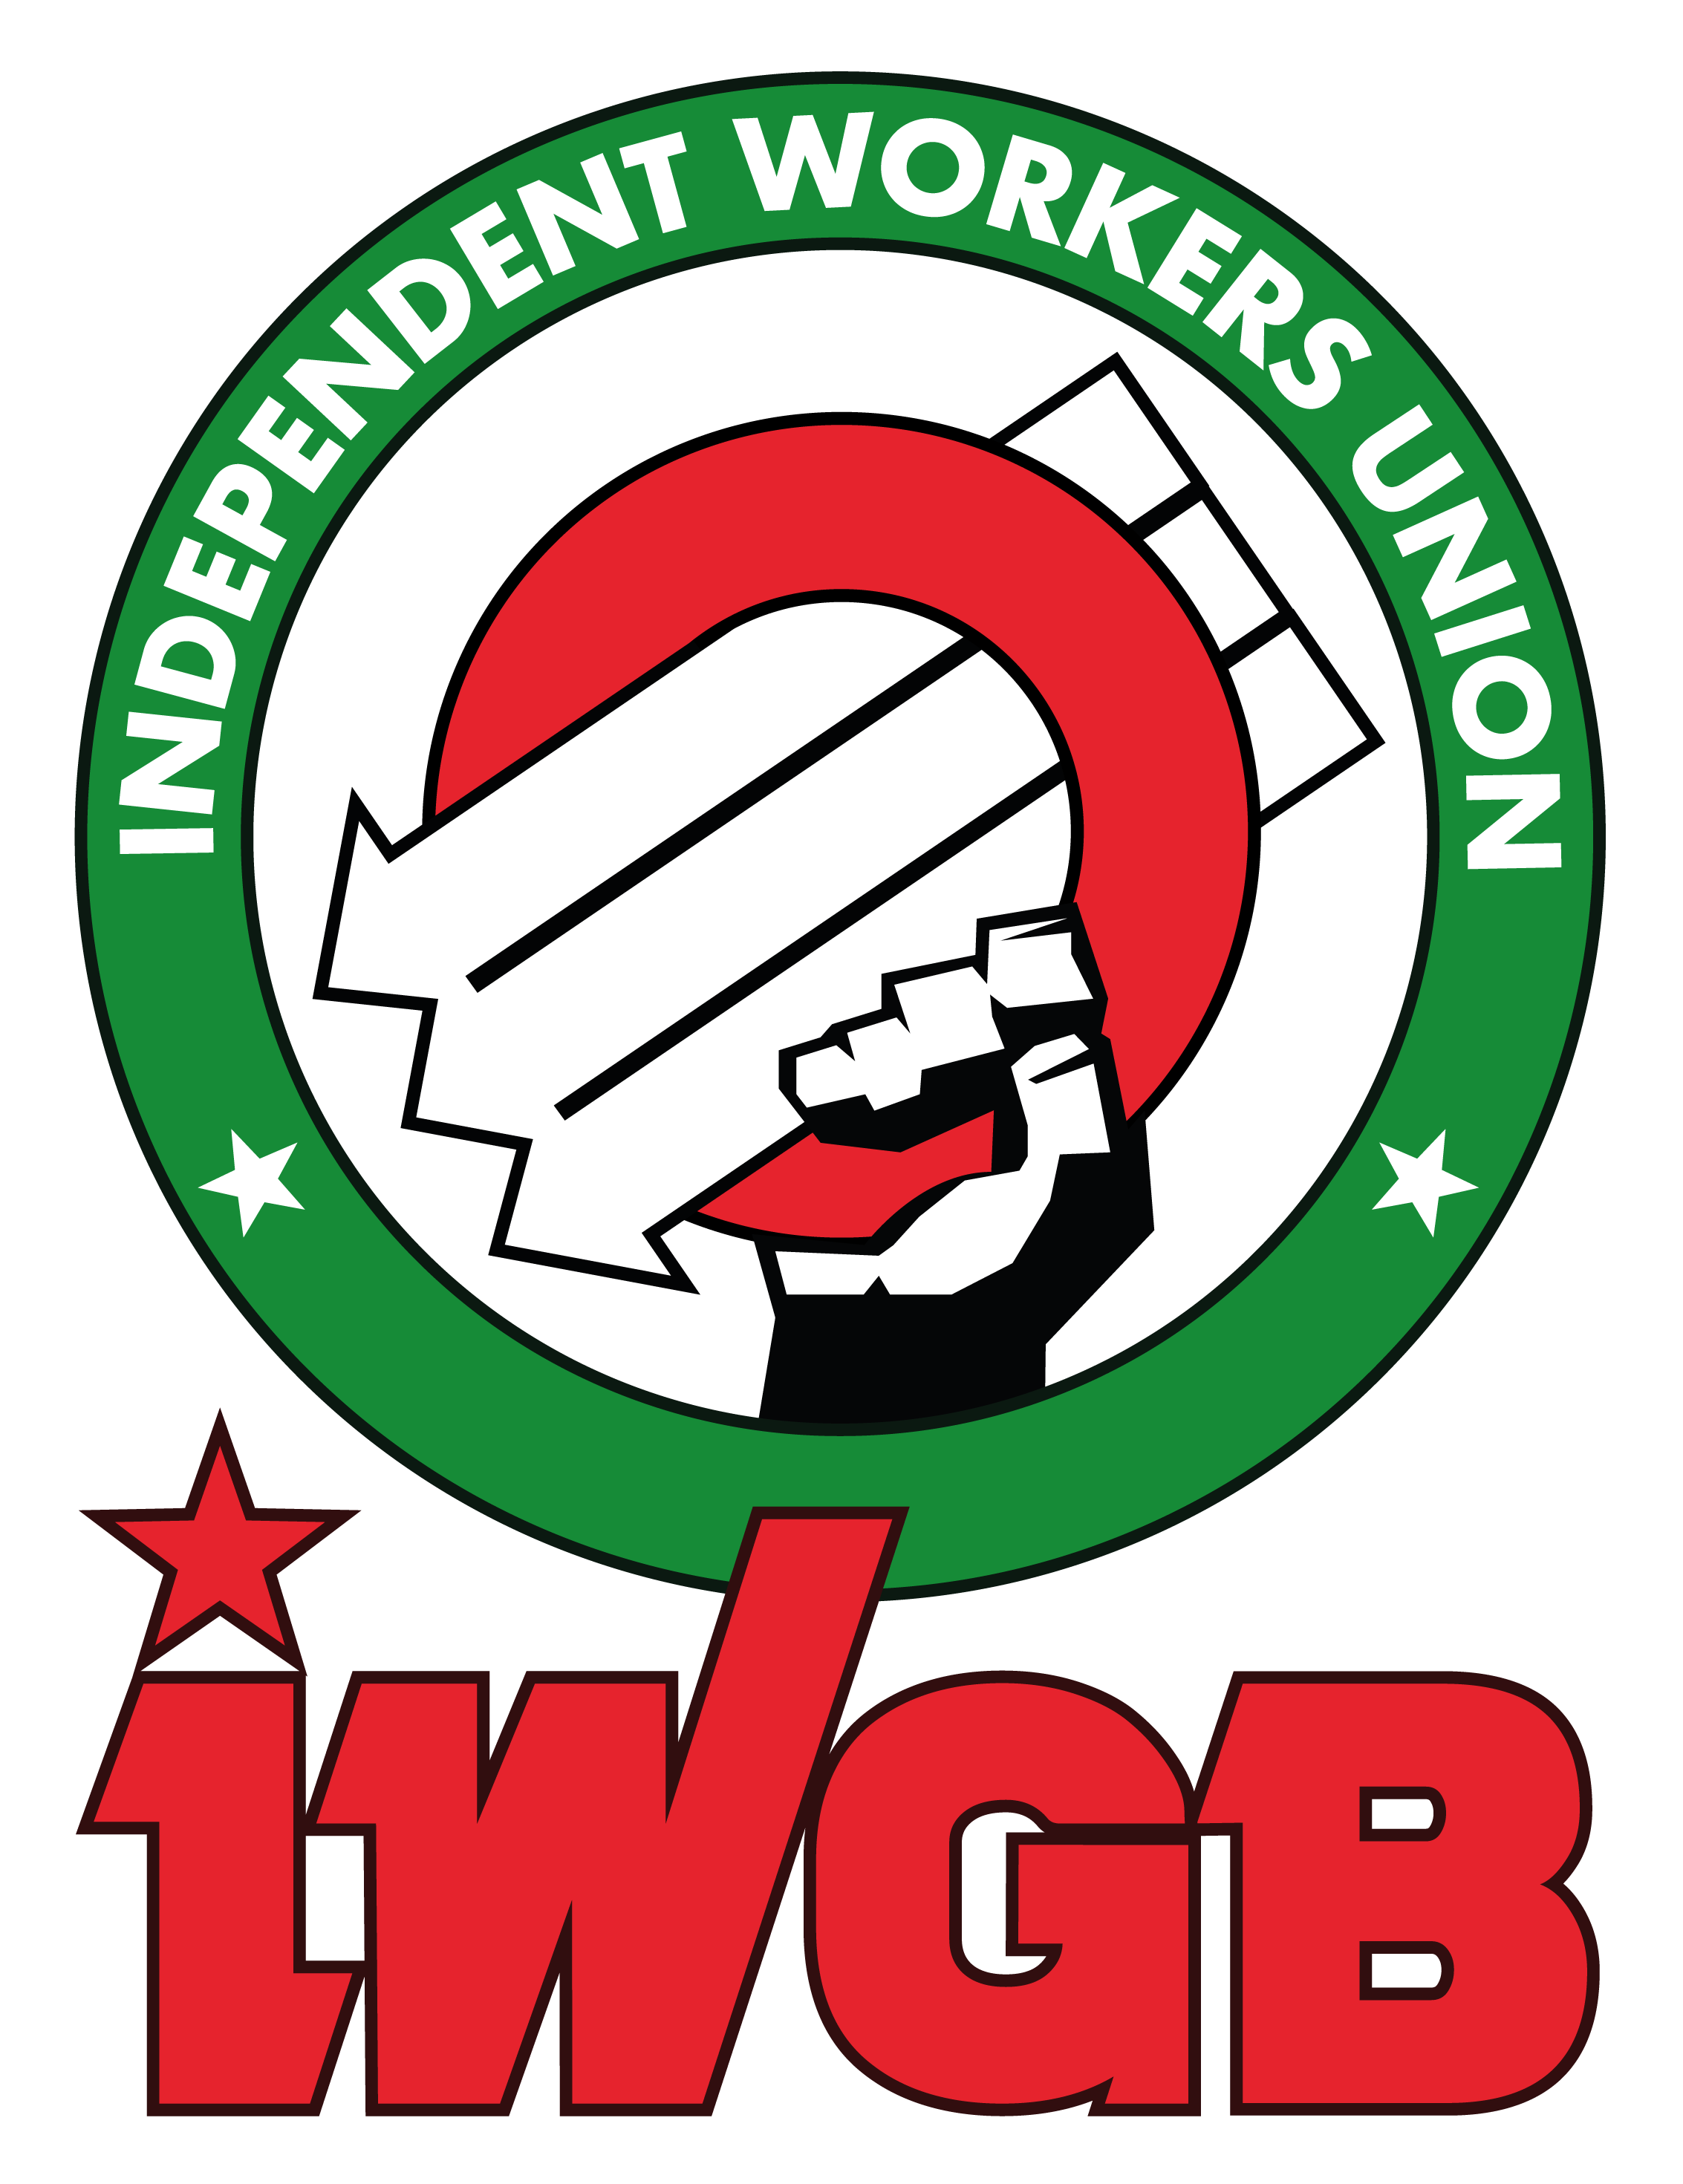 IWGB-logo_transparent-logo-circle-and-text.png